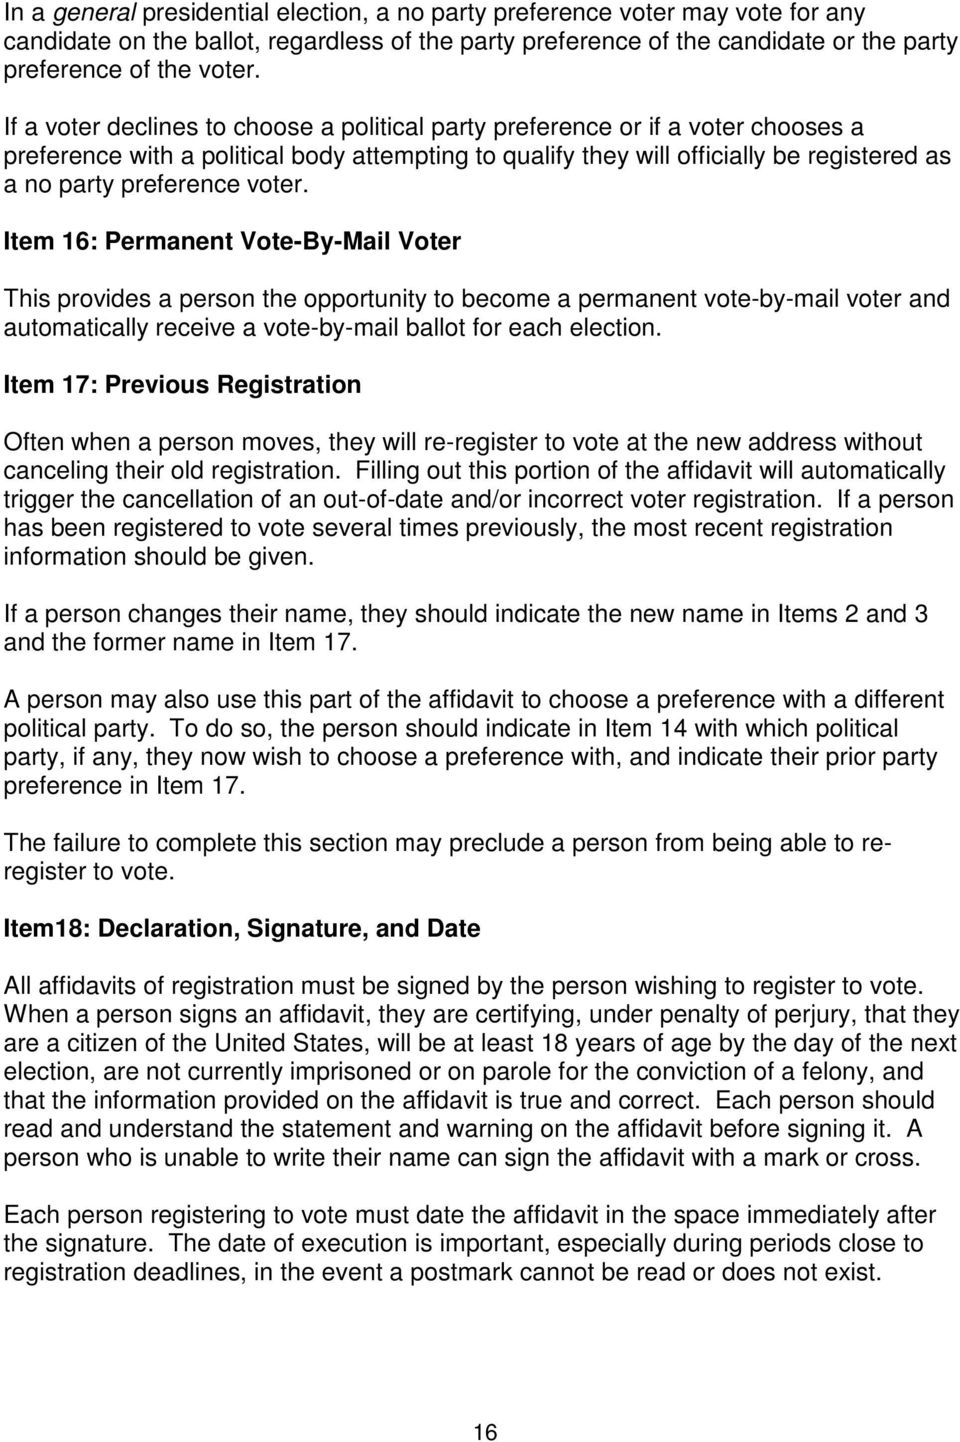 voter. Item 16: Permanent Vote-By-Mail Voter This provides a person the opportunity to become a permanent vote-by-mail voter and automatically receive a vote-by-mail ballot for each election.